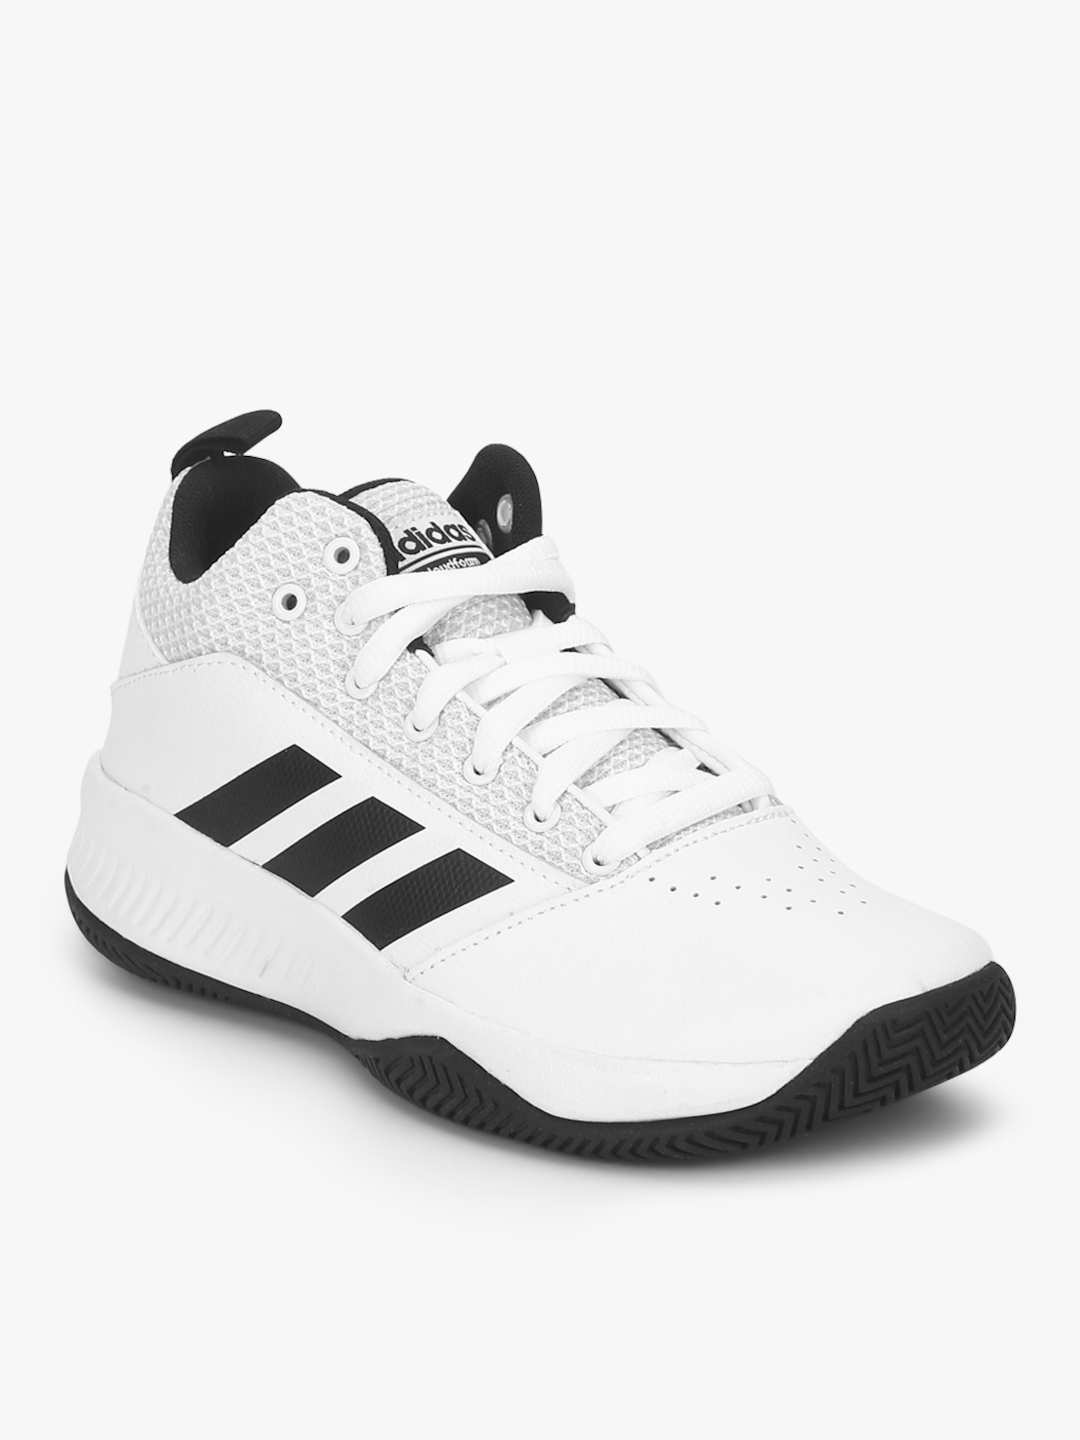 6b32bd6b00a Buy Cf Ilation 2.0 K White Basketball Shoes - Sports Shoes for ...